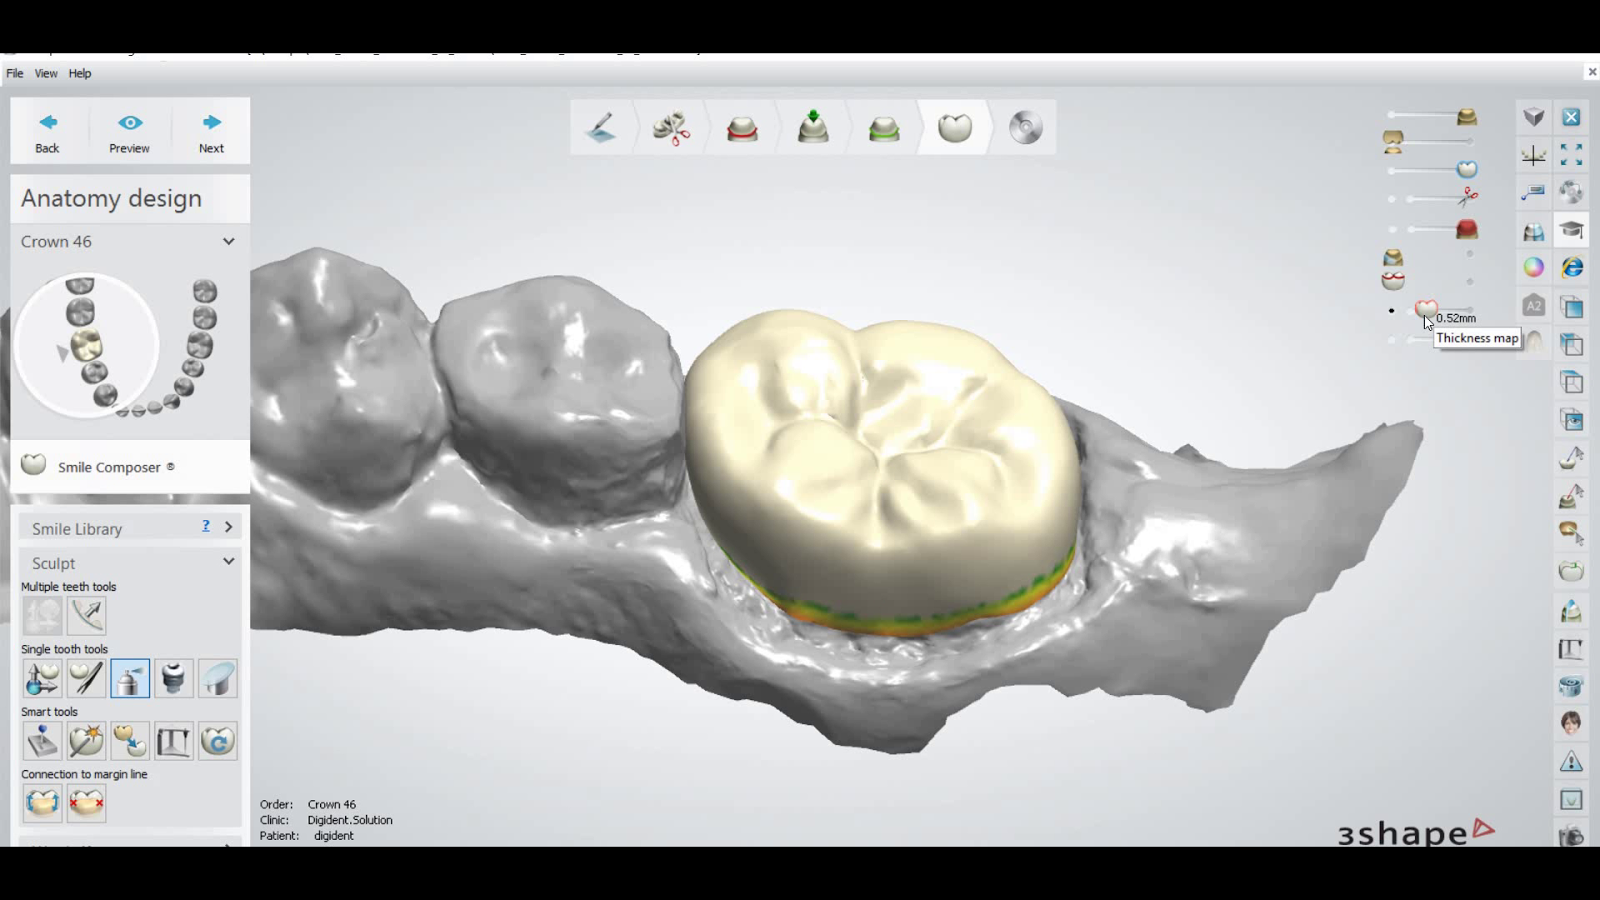 how you can check minimum thickness in 3shape dental